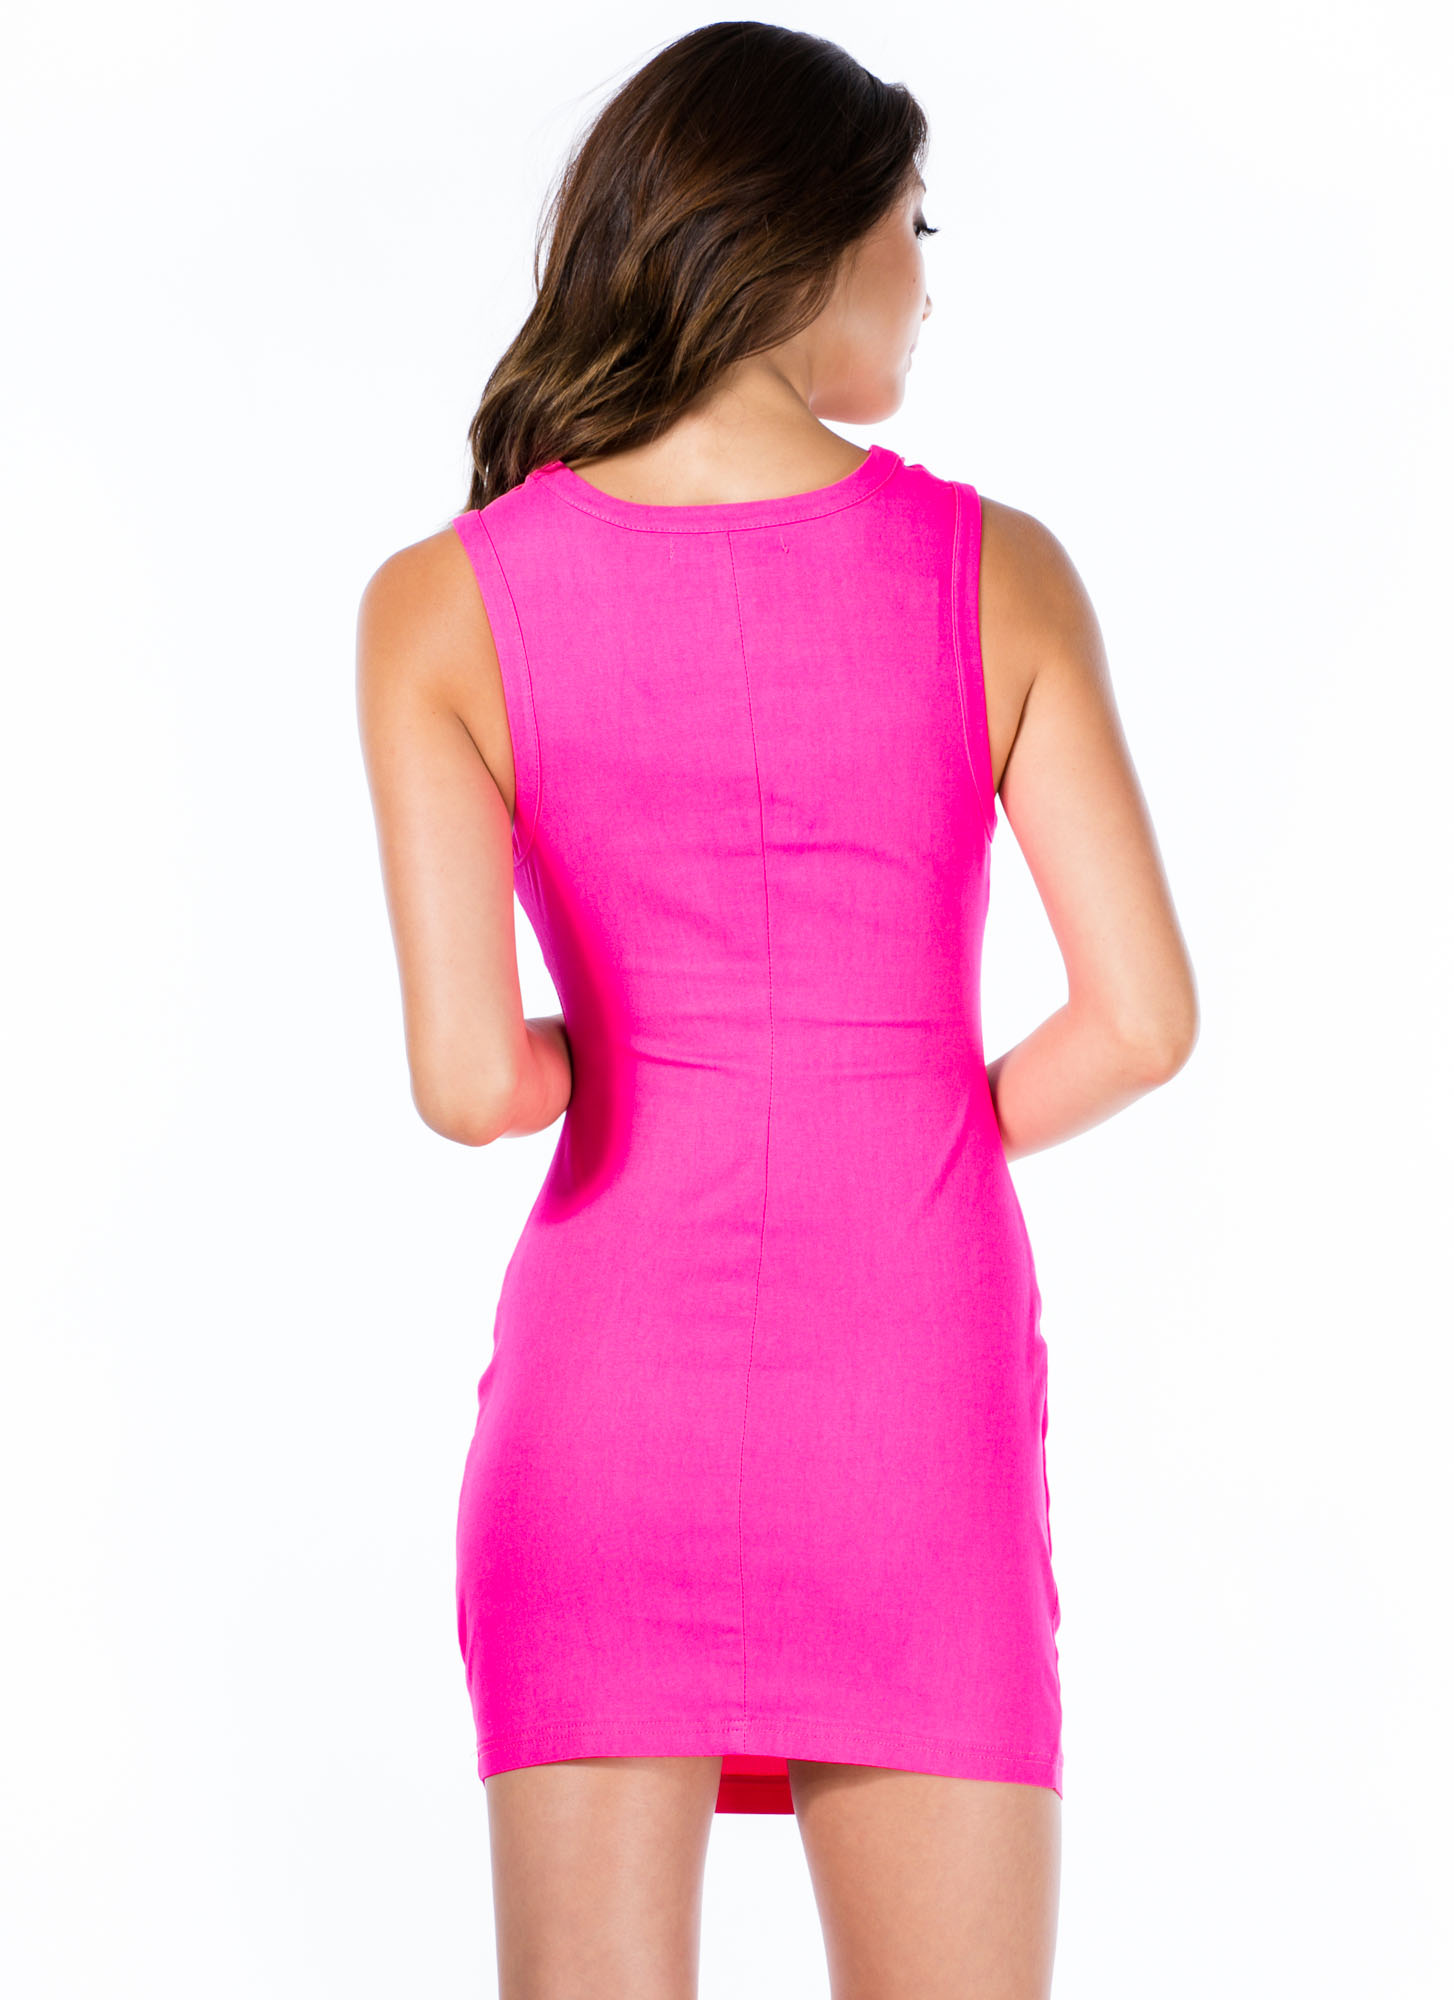 Ladder Up Strappy Caged Cut-Out Dress PINK